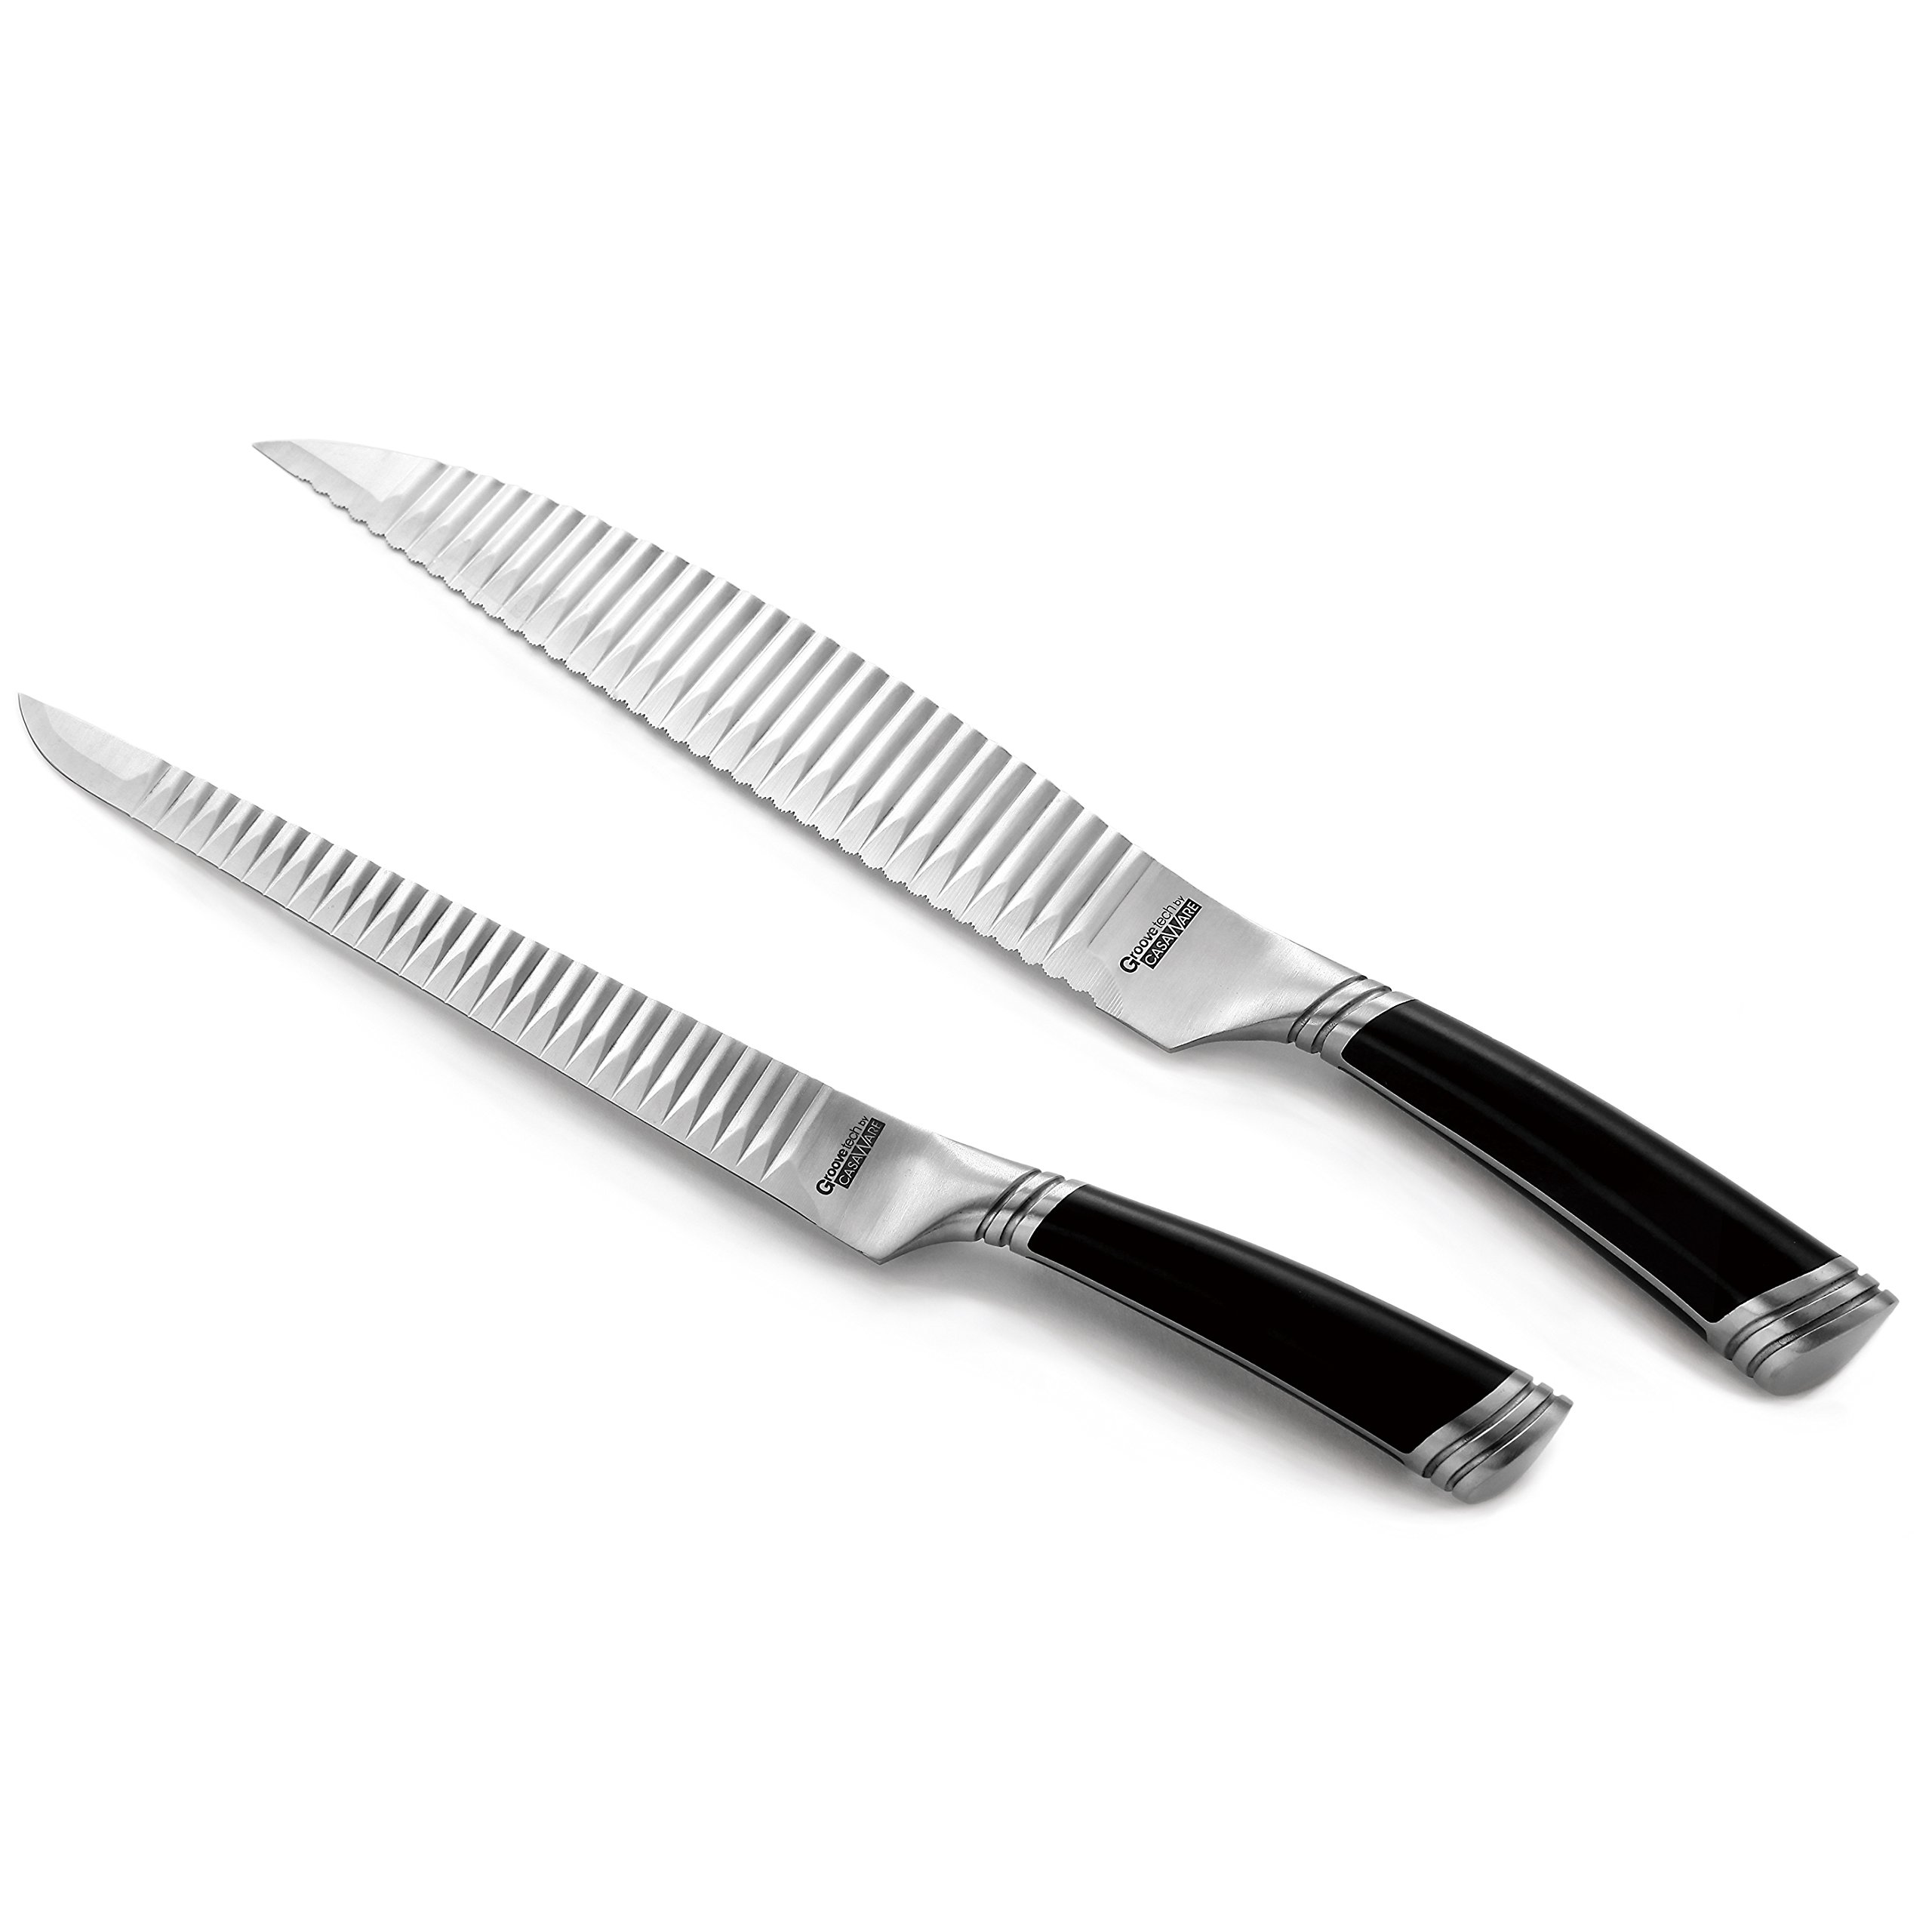 casaWare Groovetech 2-Piece Carving Set (9-Inch Carving and 9-Inch Serrated Bread Knife)